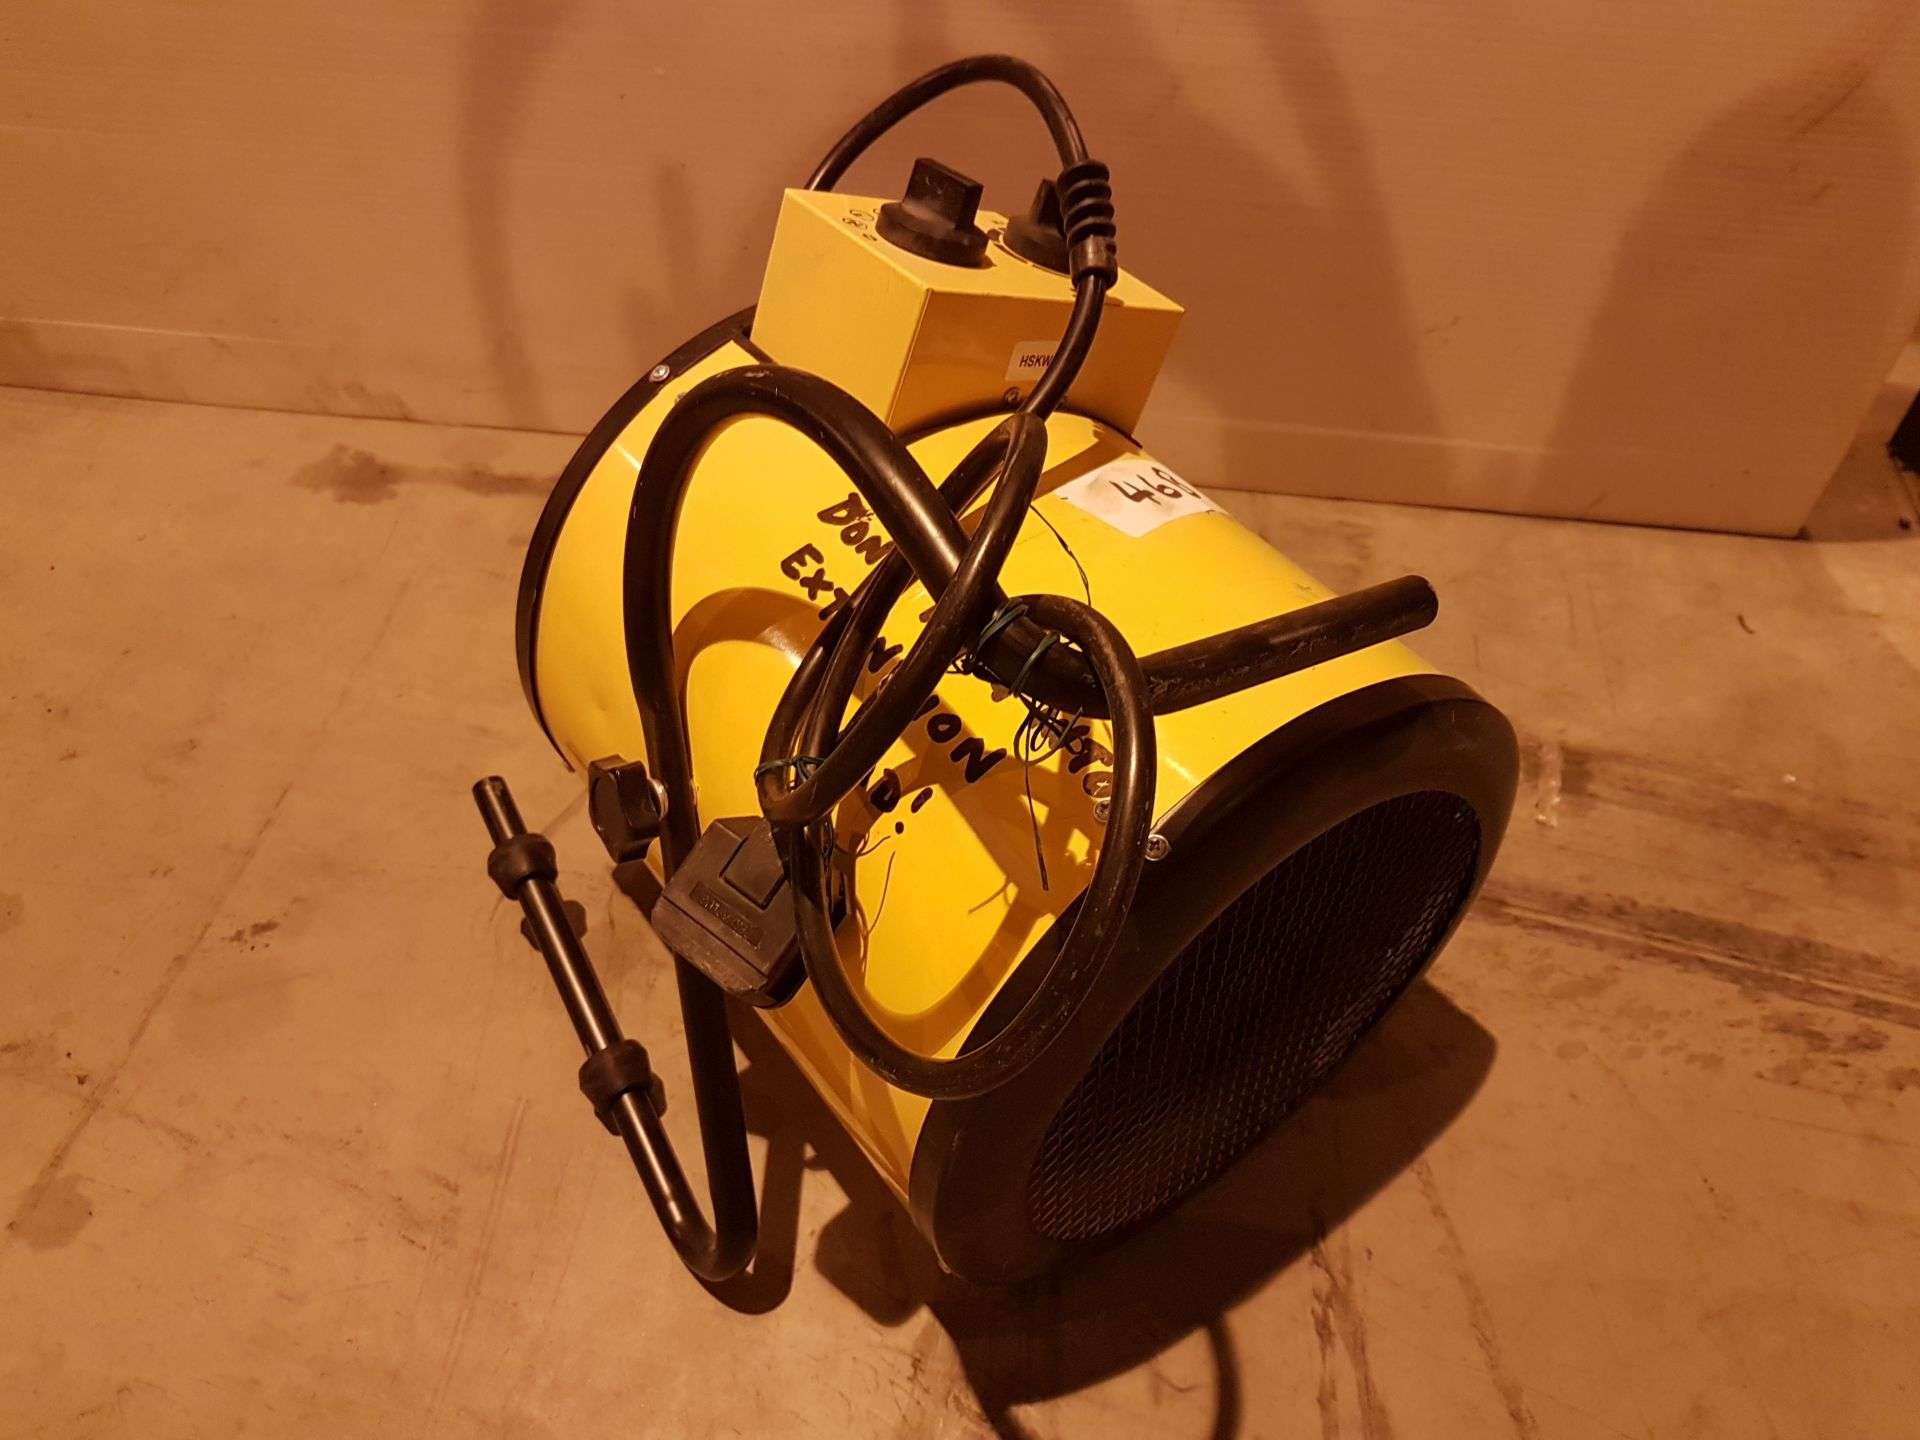 Lot 46 - 240v Retail Heater hskw5494, working